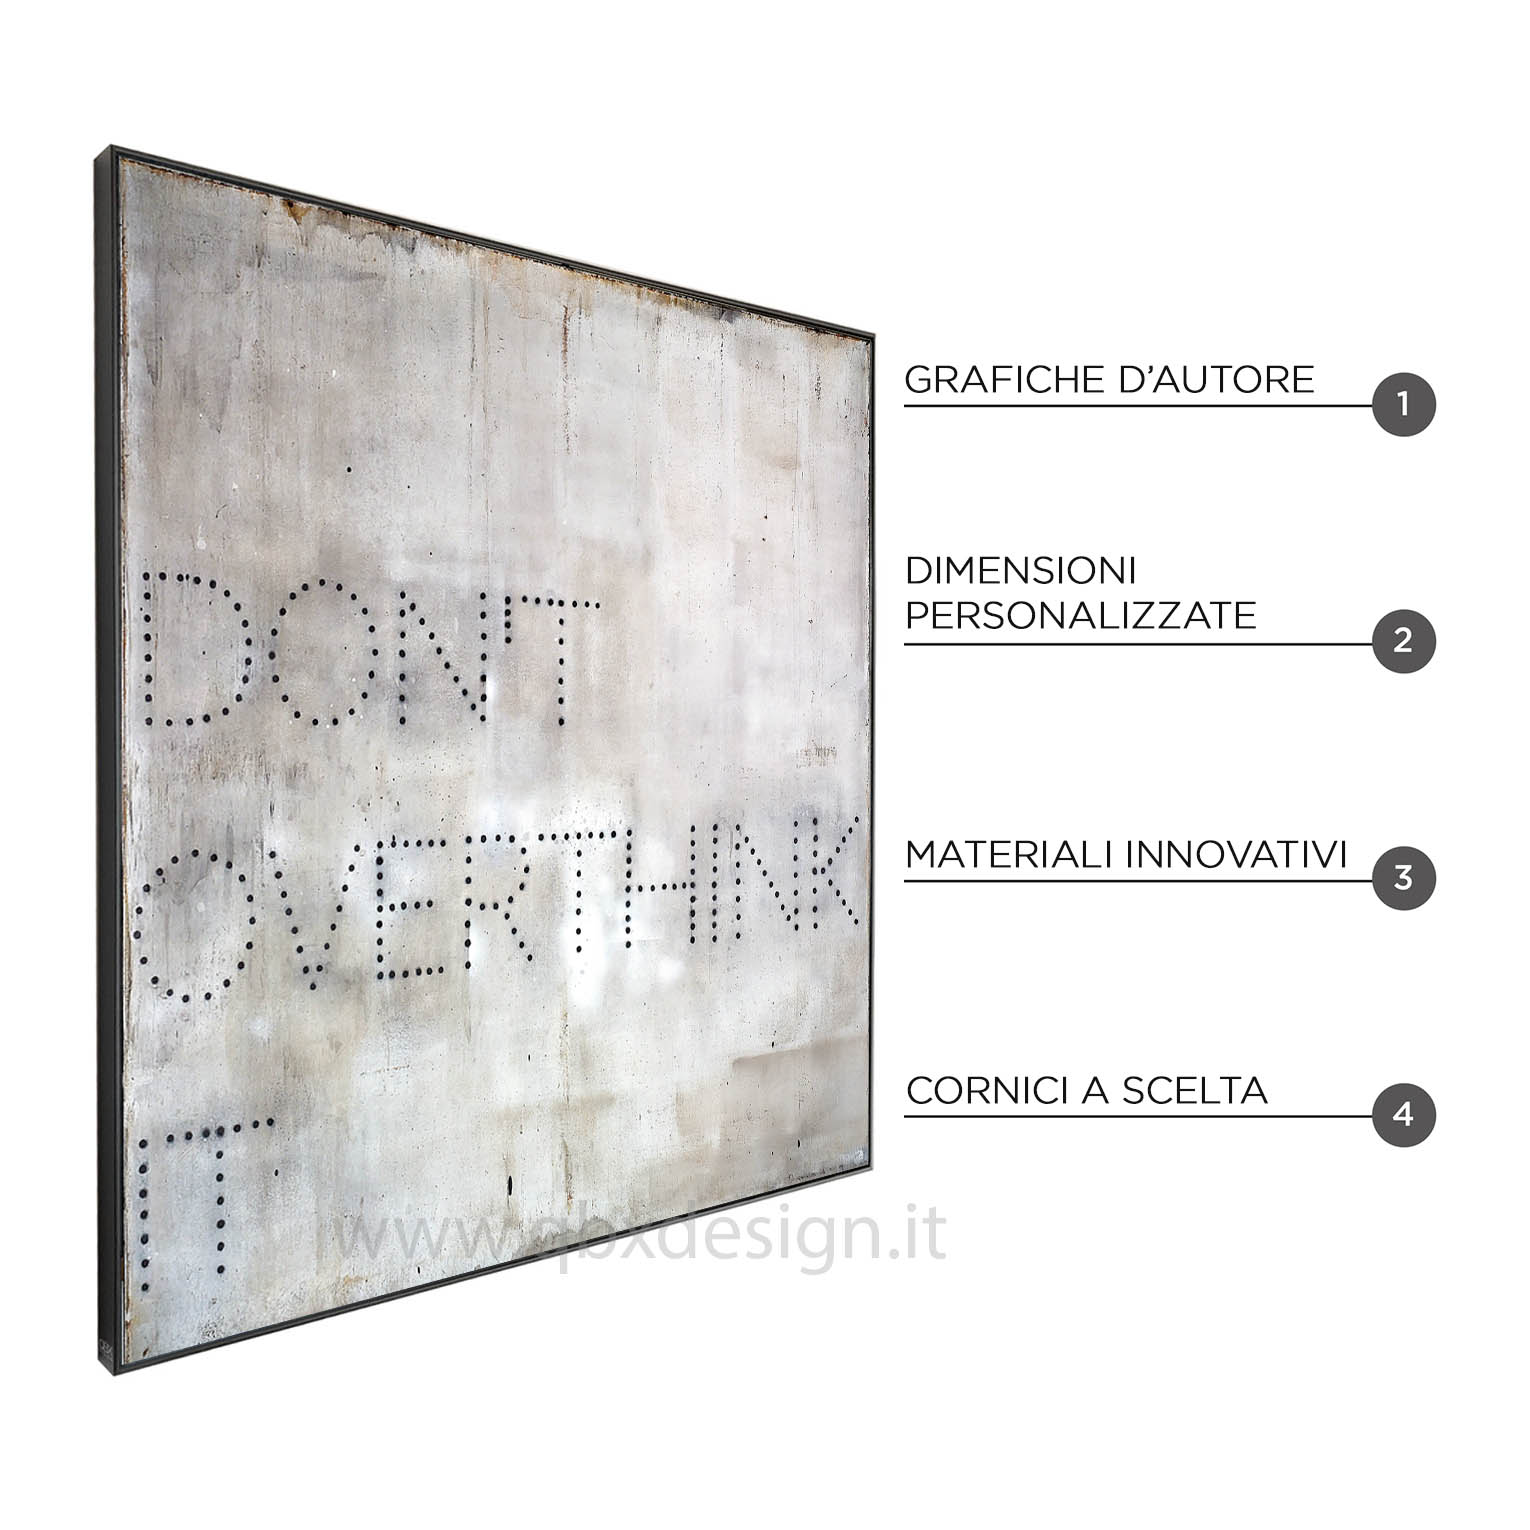 PDON'T OVERTHINK IT - QBX DESIGN QUADRO ASTRATTO